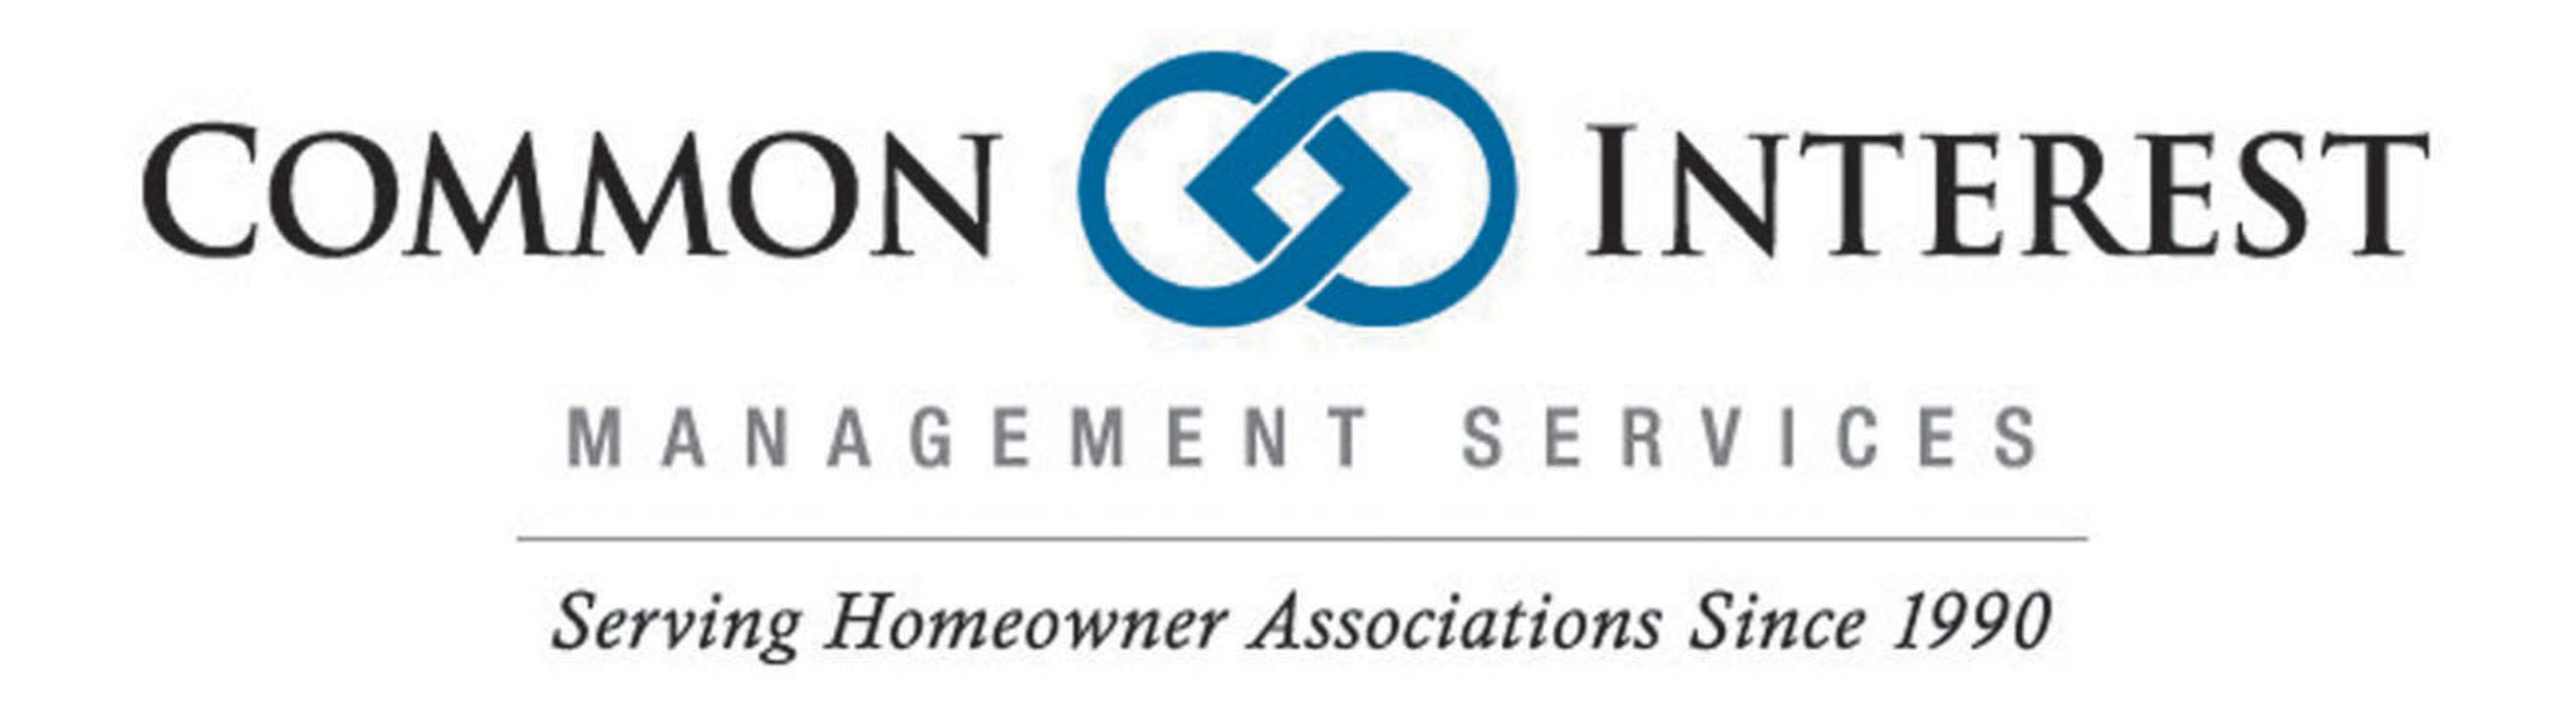 Founded in 1990, Common Interest Management is a leading provider of professional association management ...